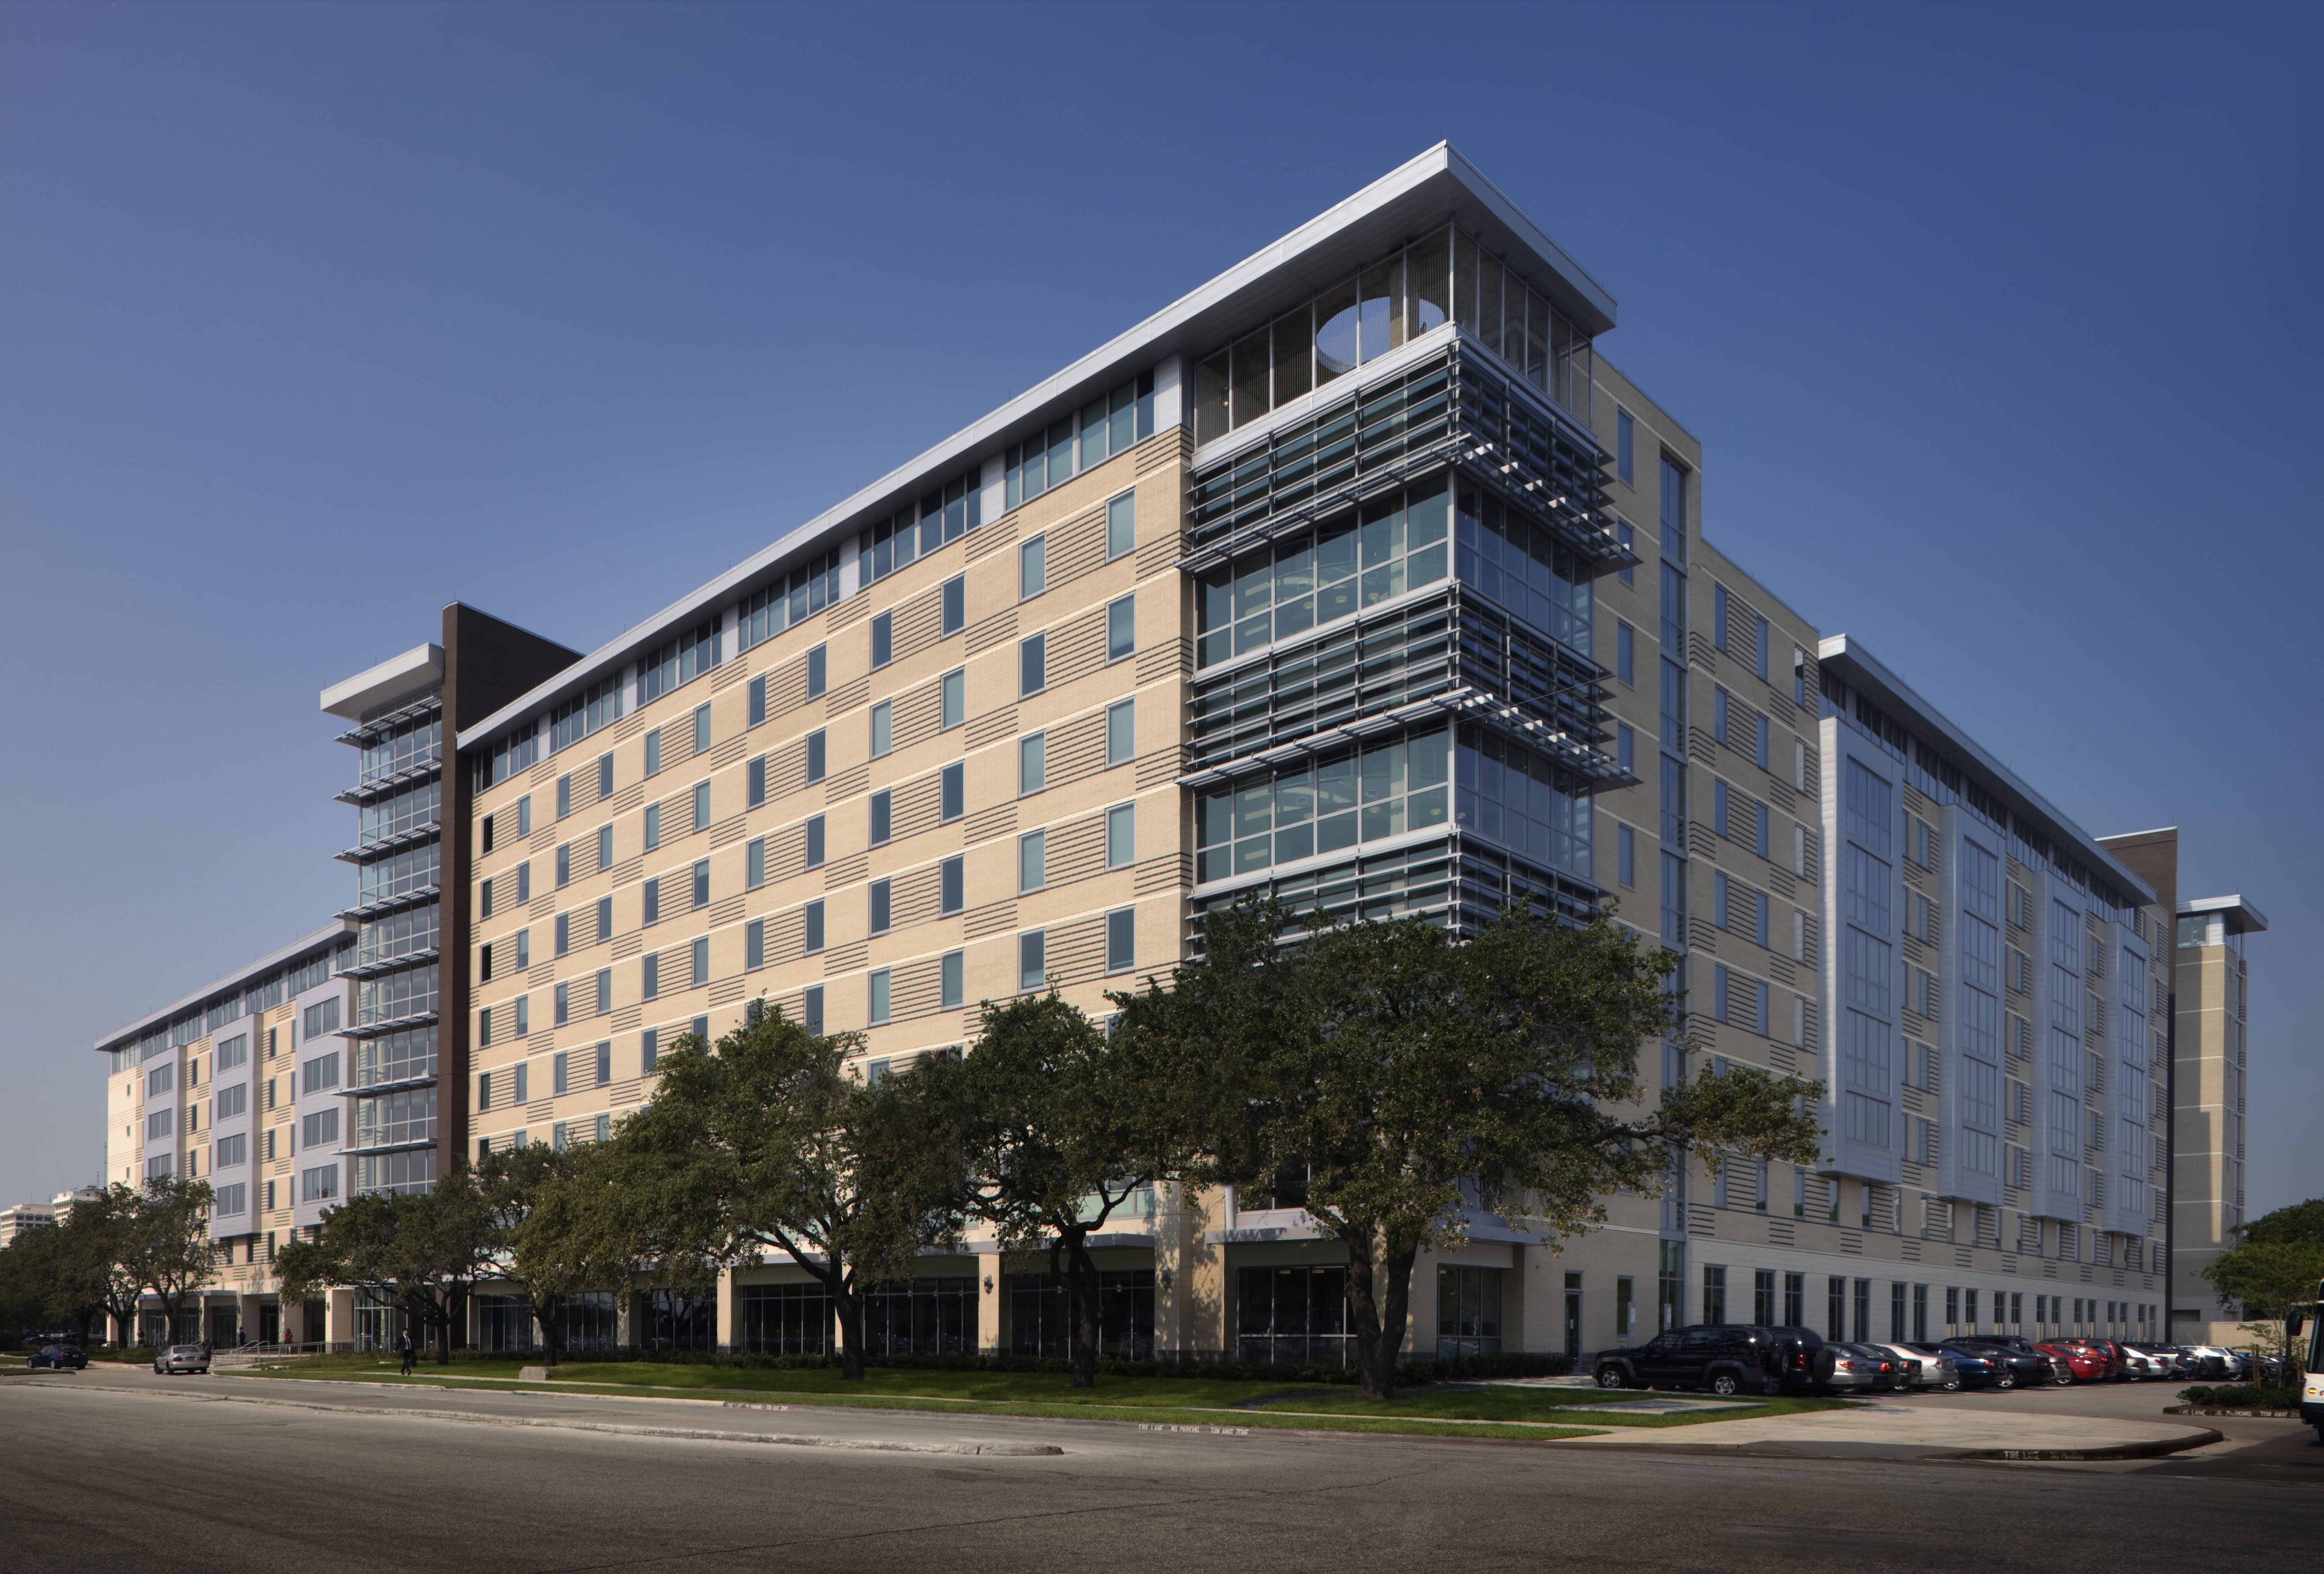 University of houston apartments off campus latest for University of houston student housing